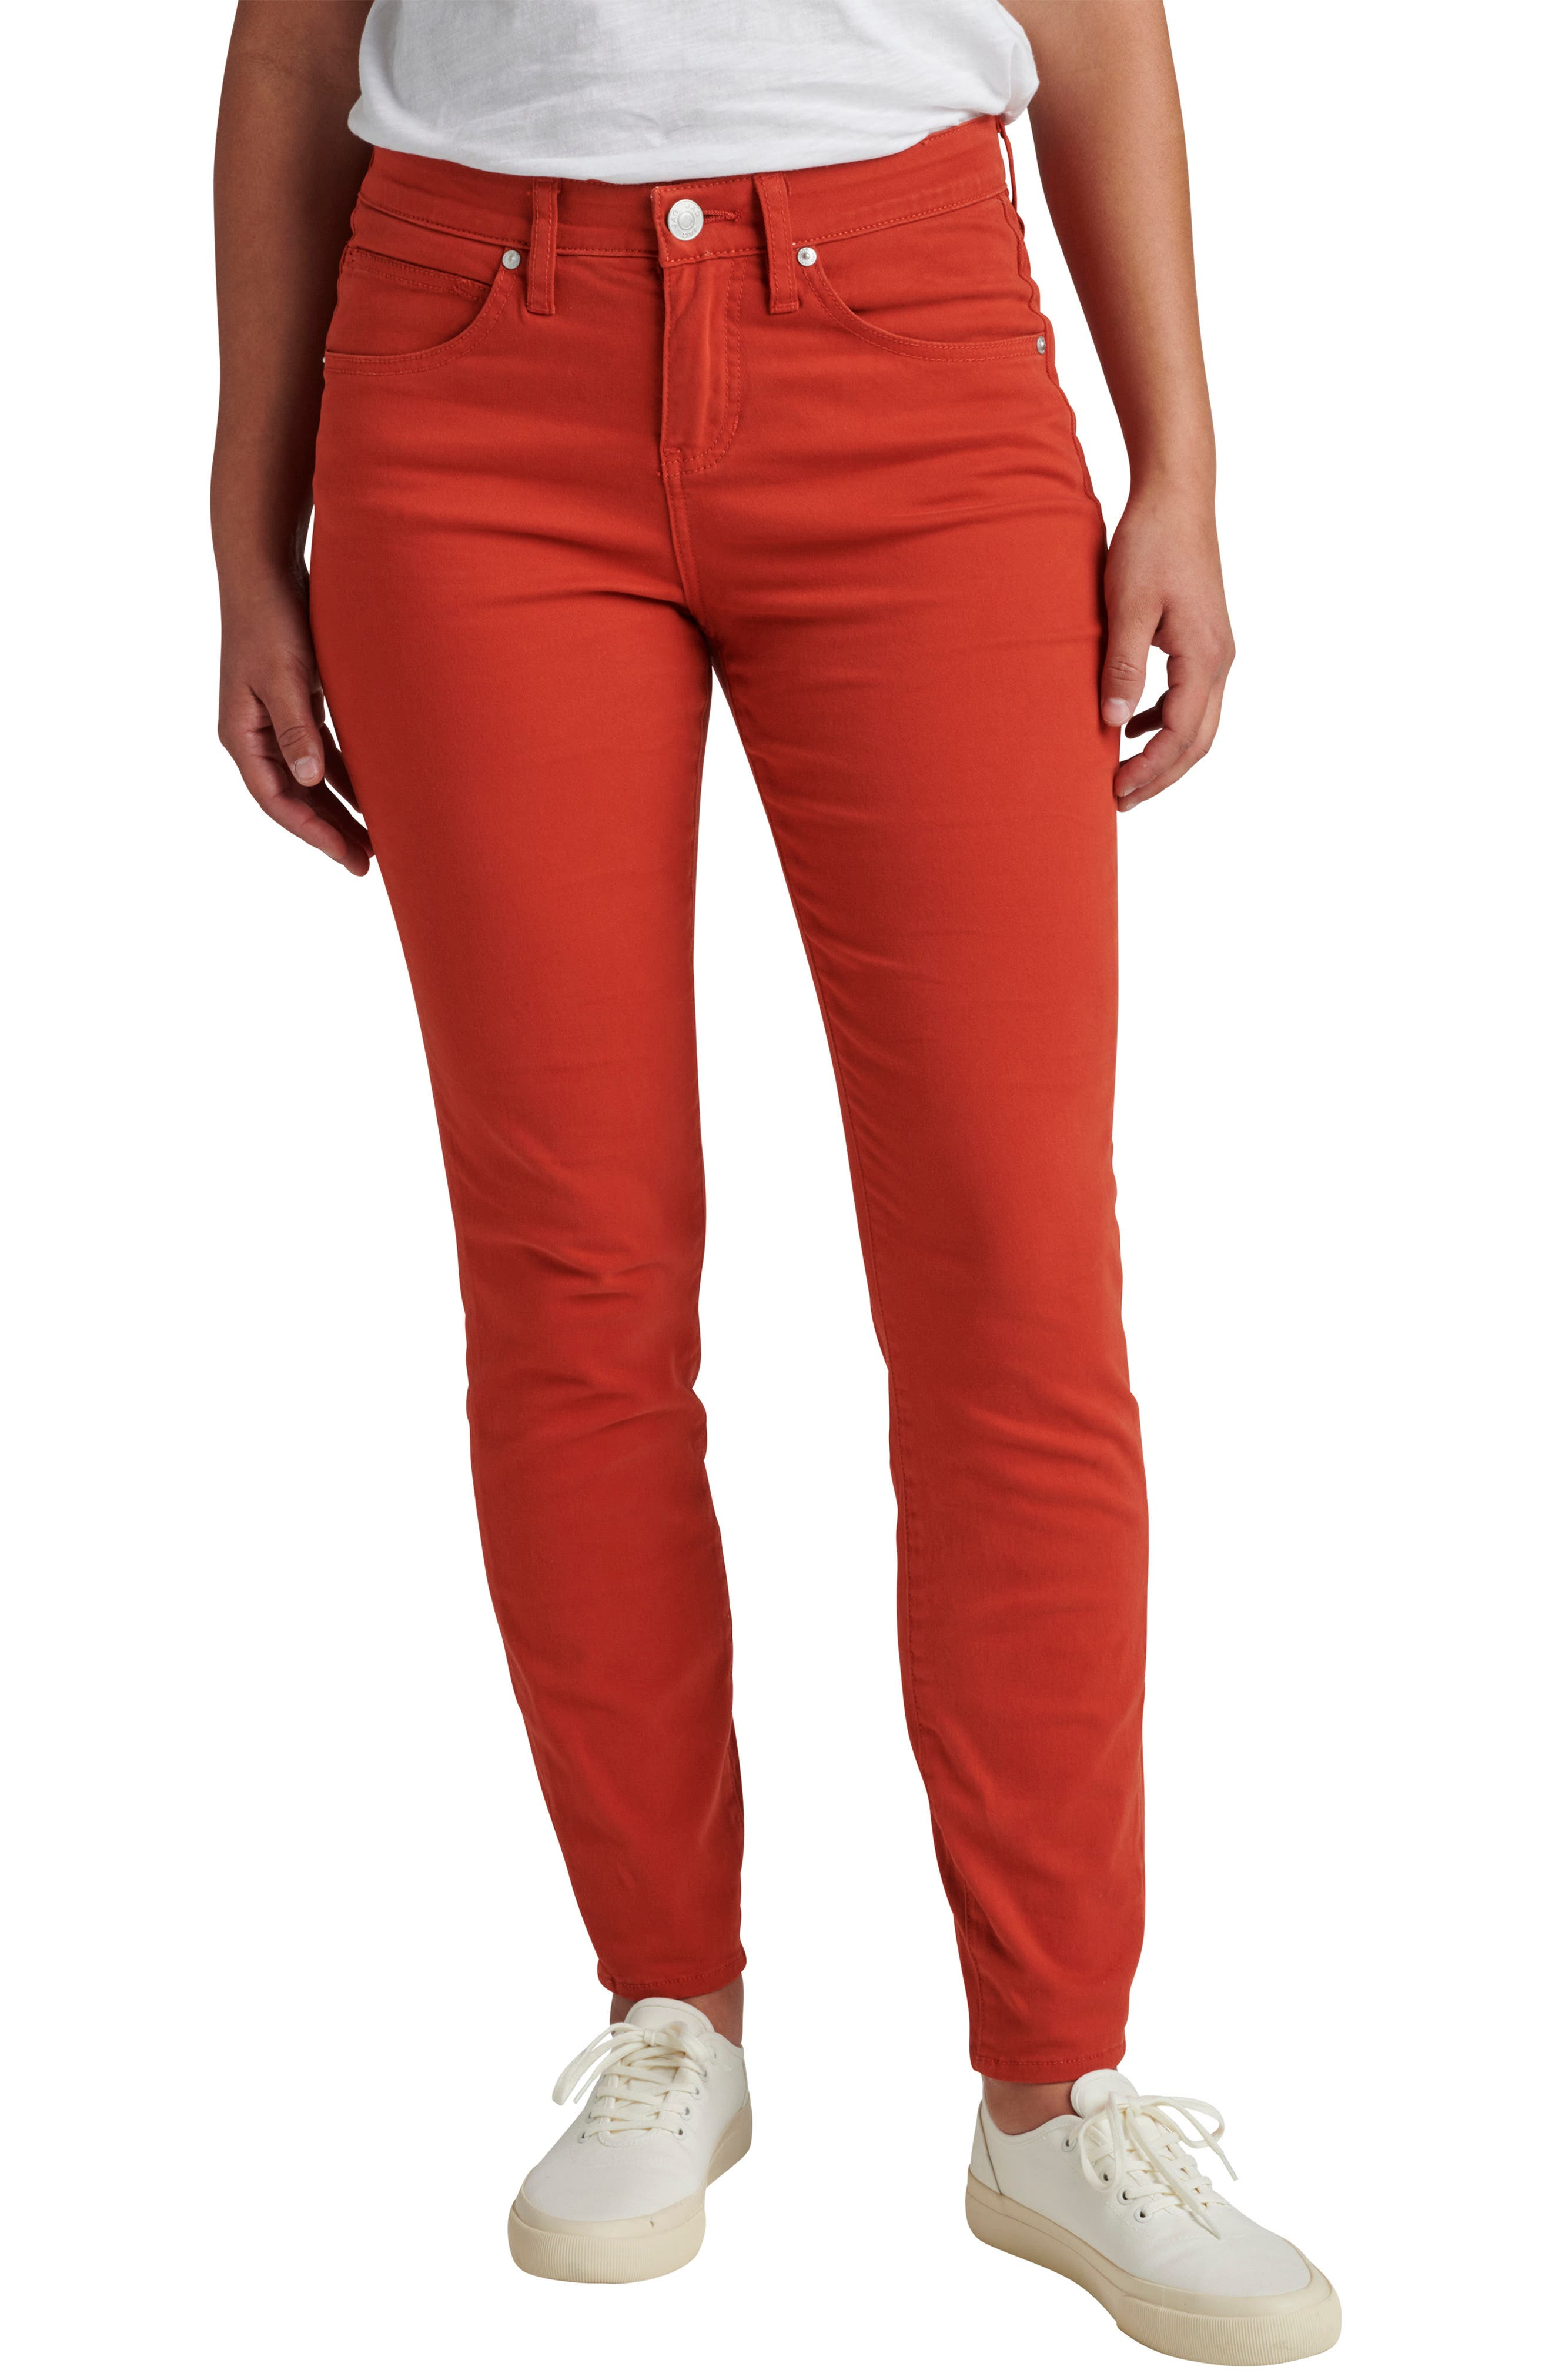 Cecilia Ankle Skinny Jeans